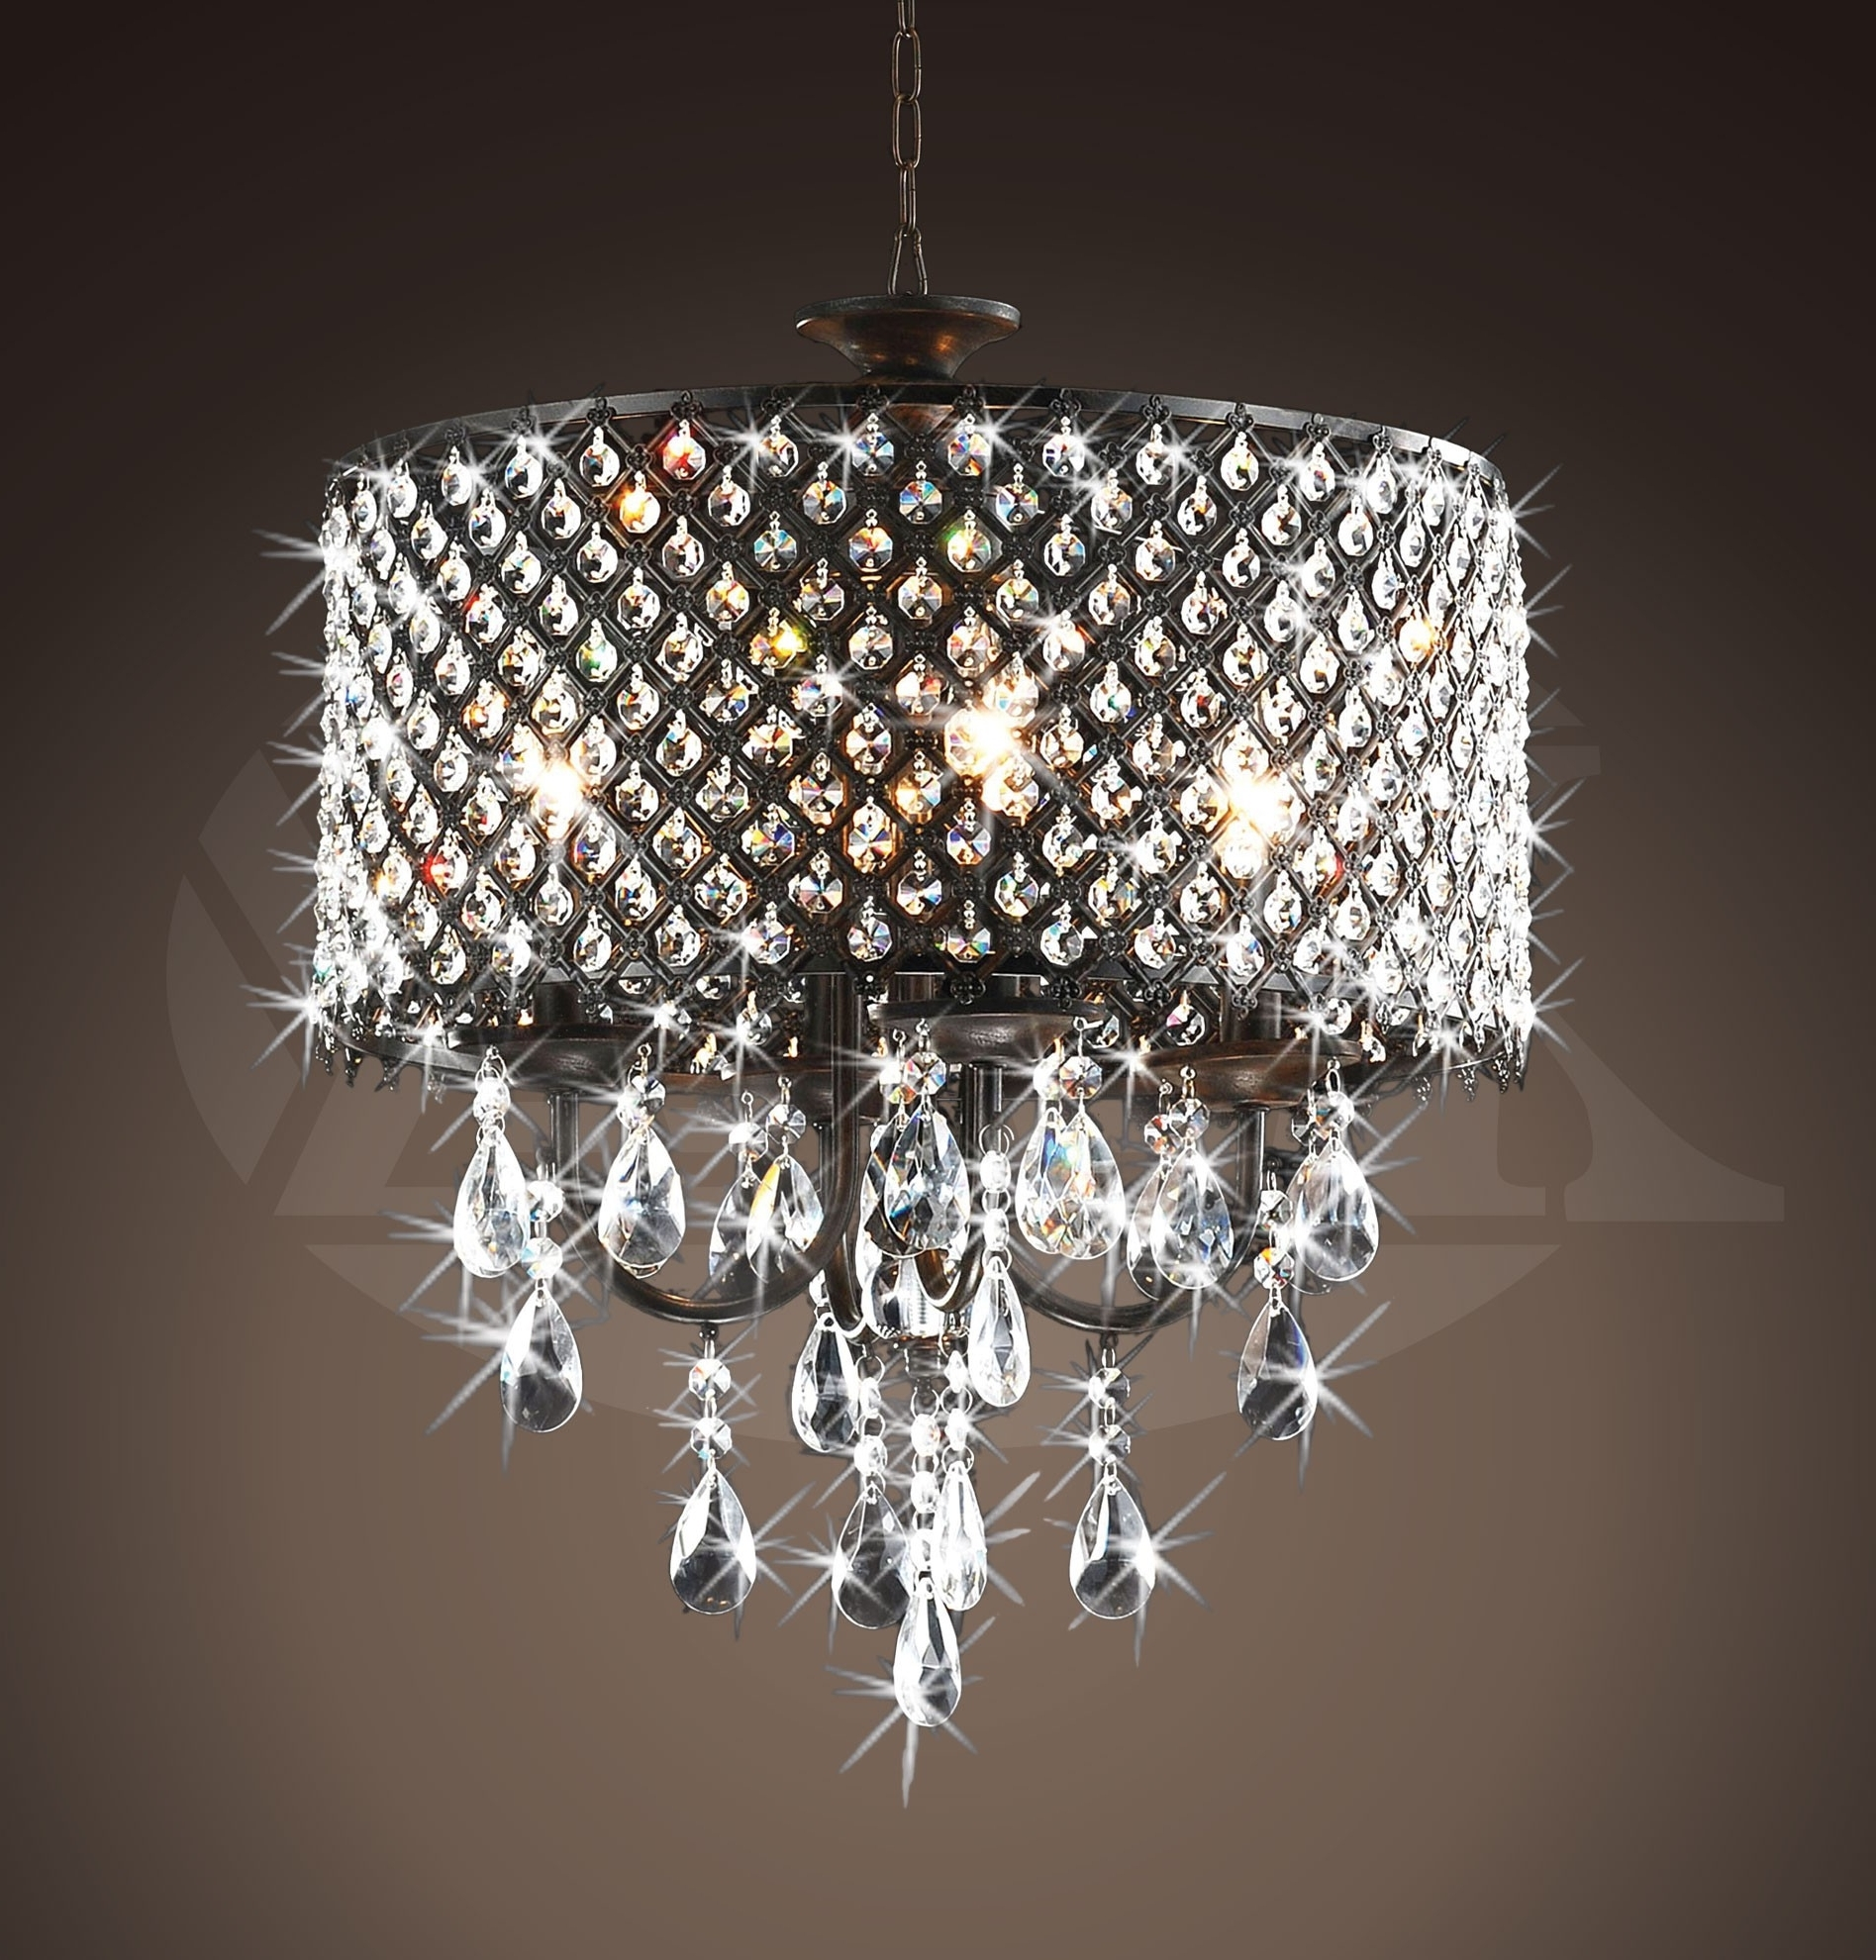 Newest Brass And Crystal Chandelier In Rachelle 4 Light Round Antique Bronze Brass Crystal Chandelier (Gallery 17 of 20)